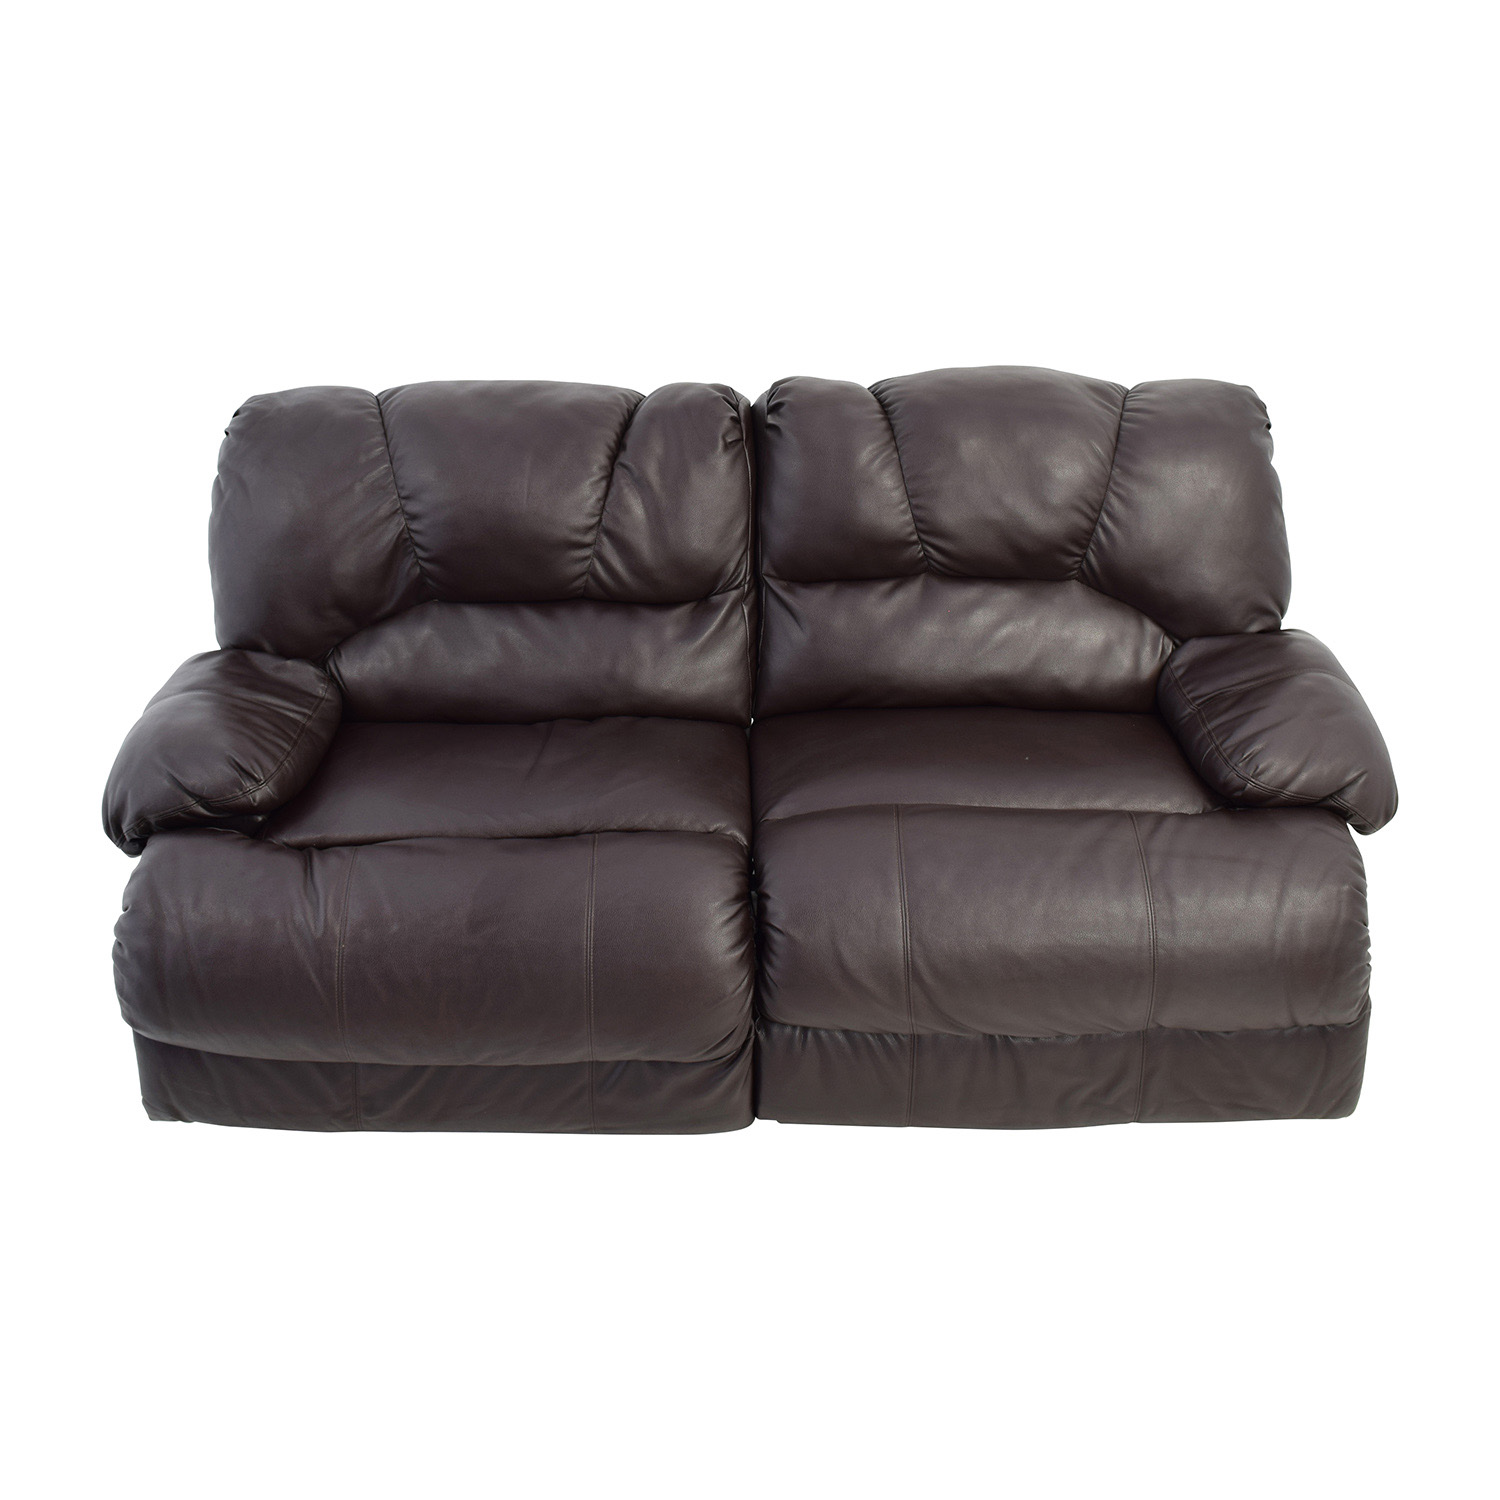 Leather mart sofa leather mart sofa supplieranufacturers for Leather sectional sofa mart